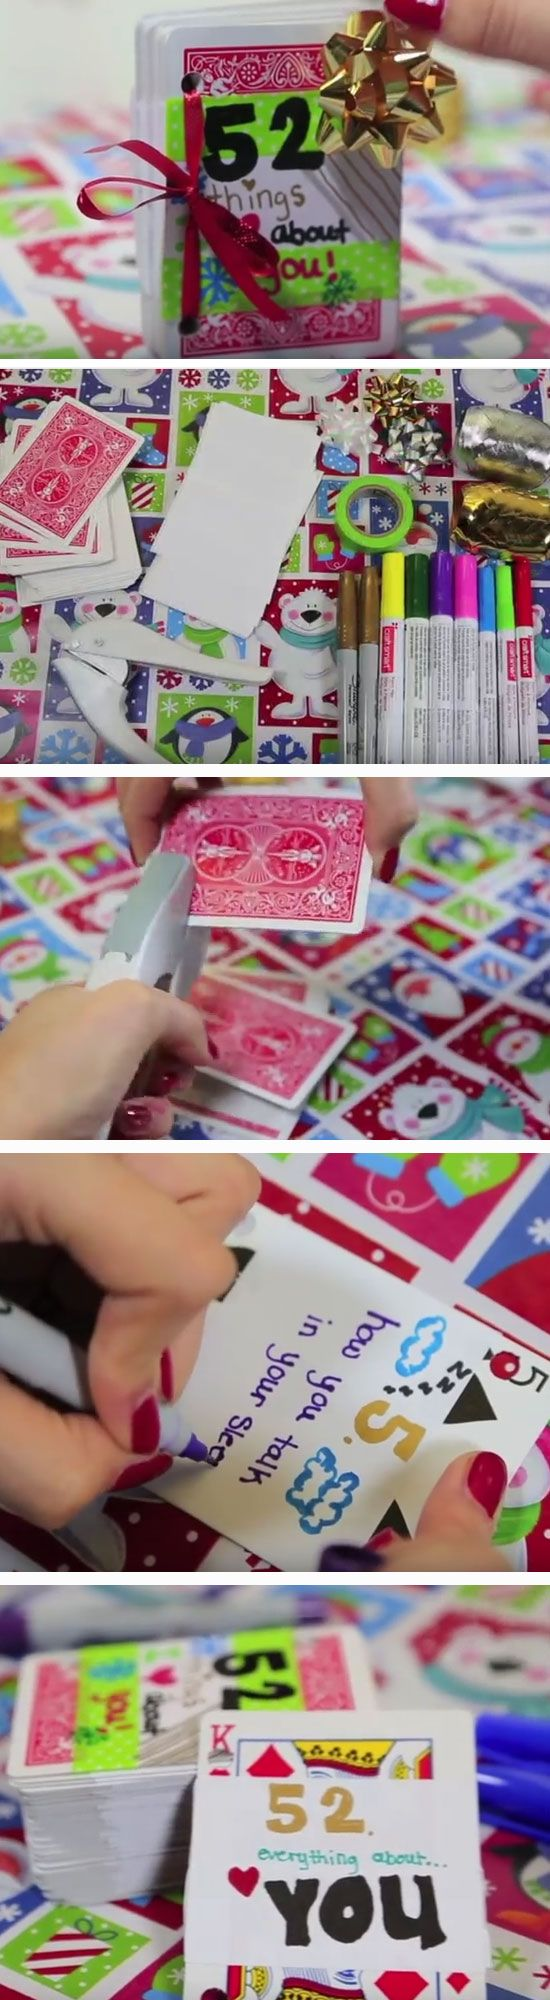 52 Things I Love About You | 35 + DIY Christmas Gifts for Teen Girls